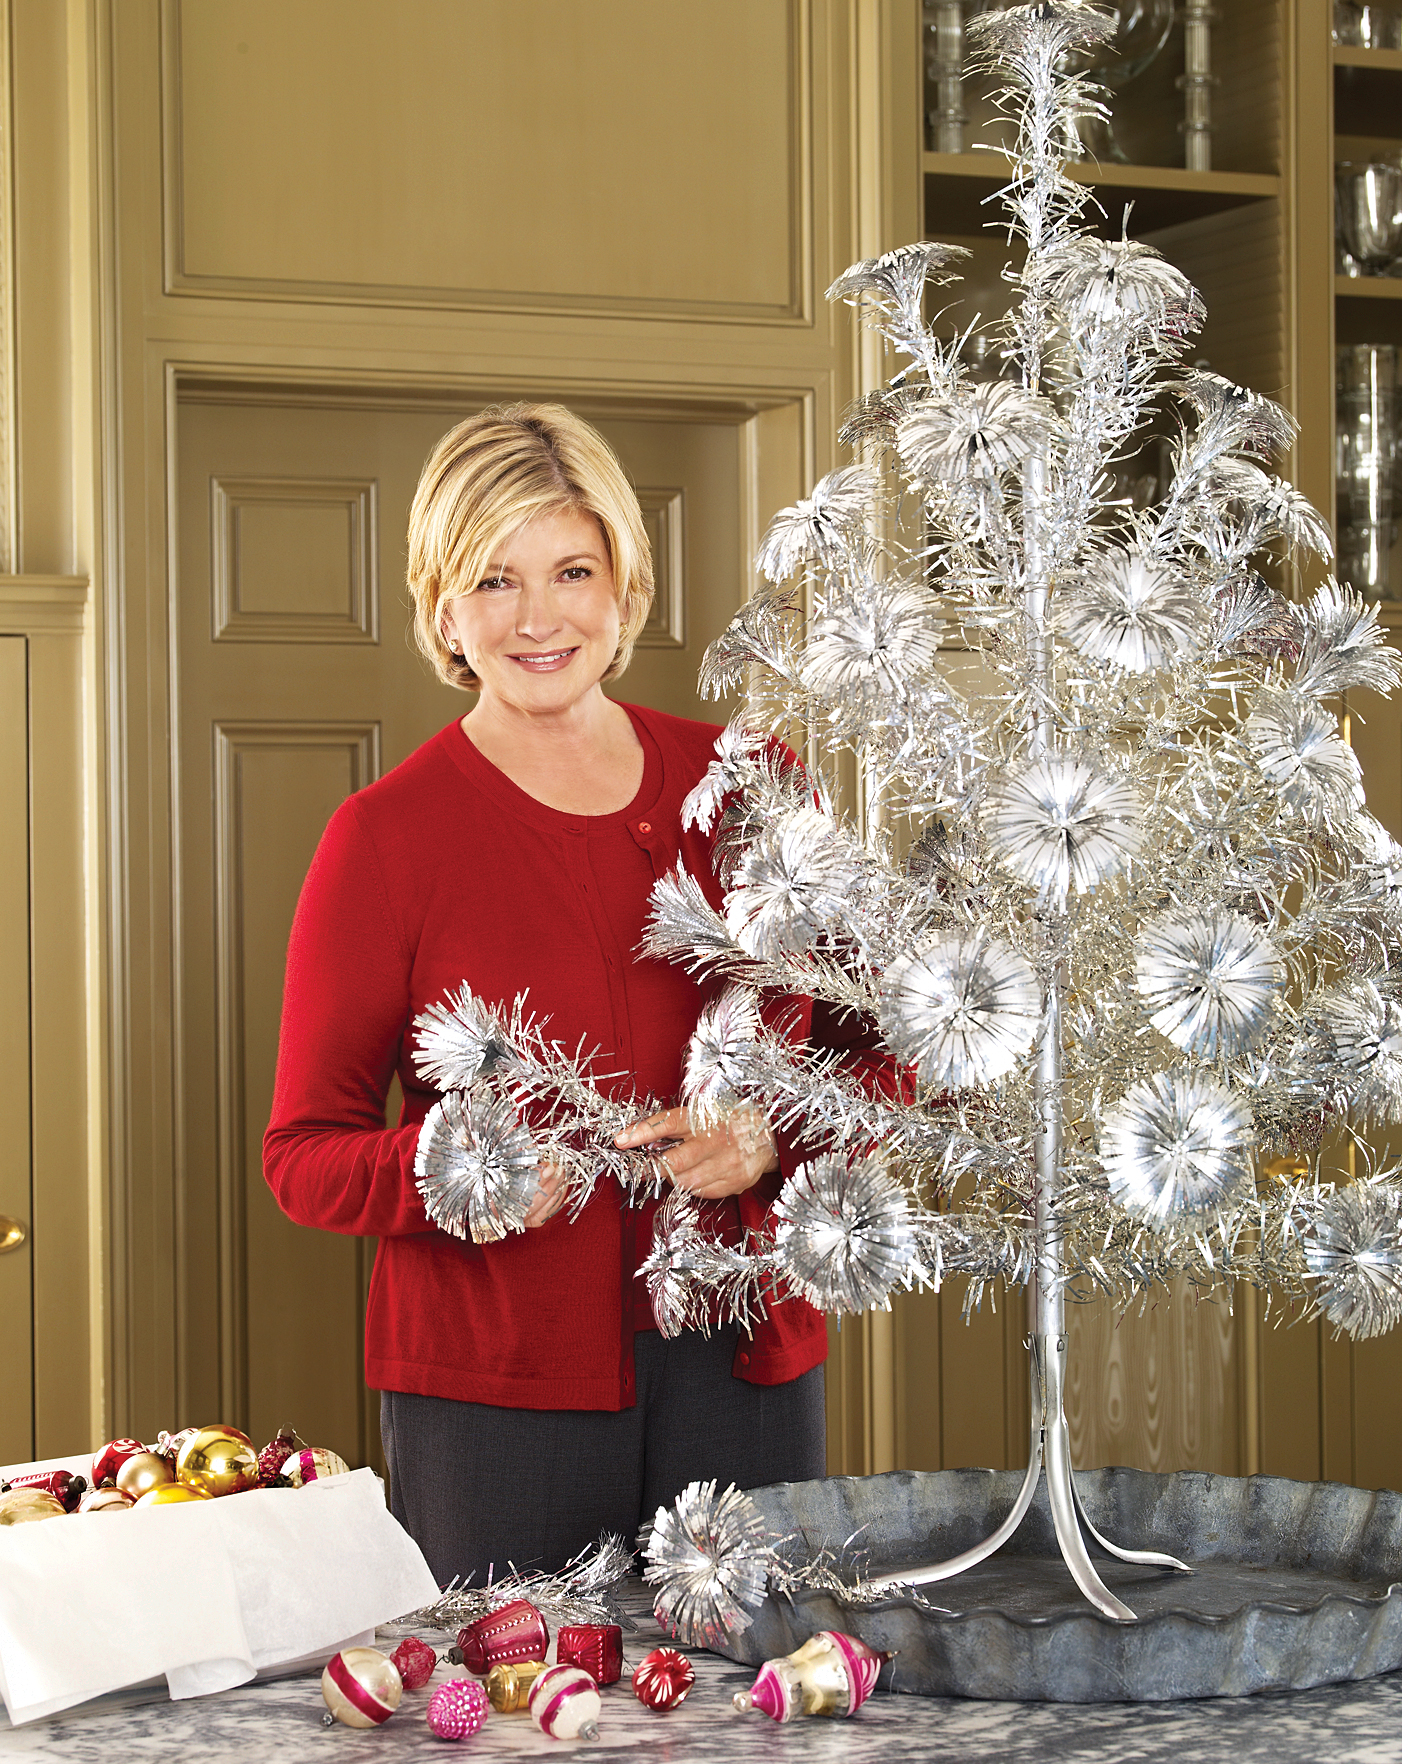 Martha S Personal Collection Of Vintage Faux Christmas Trees Martha Stewart